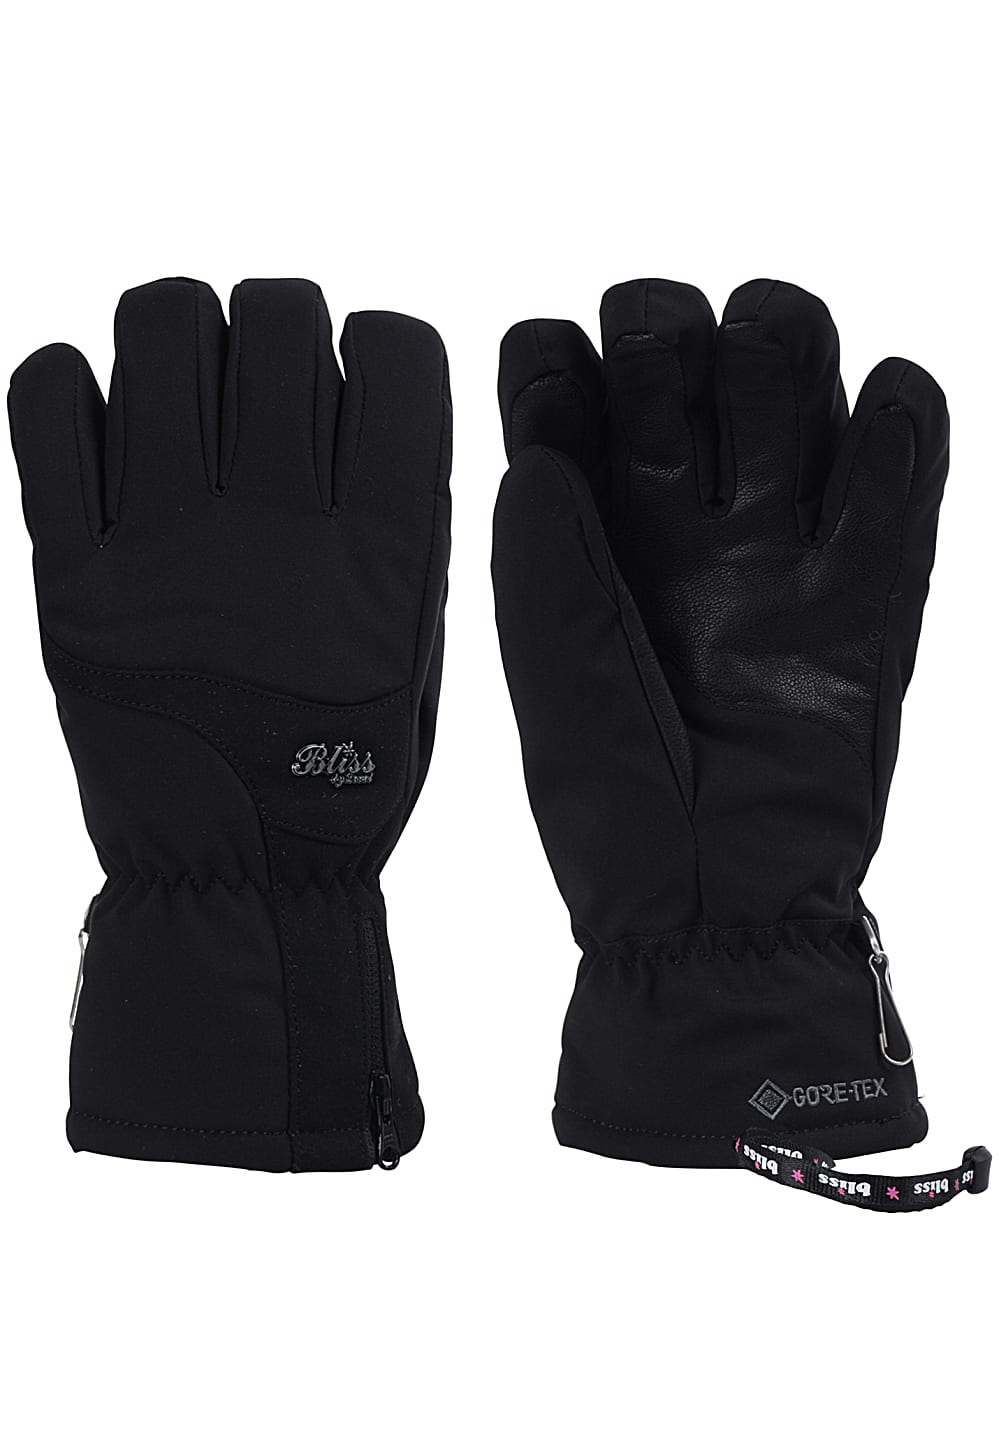 Handschuhe - Level Bliss Emerald Gore Tex Snowboard Handschuhe für Damen Schwarz  - Onlineshop Planet Sports